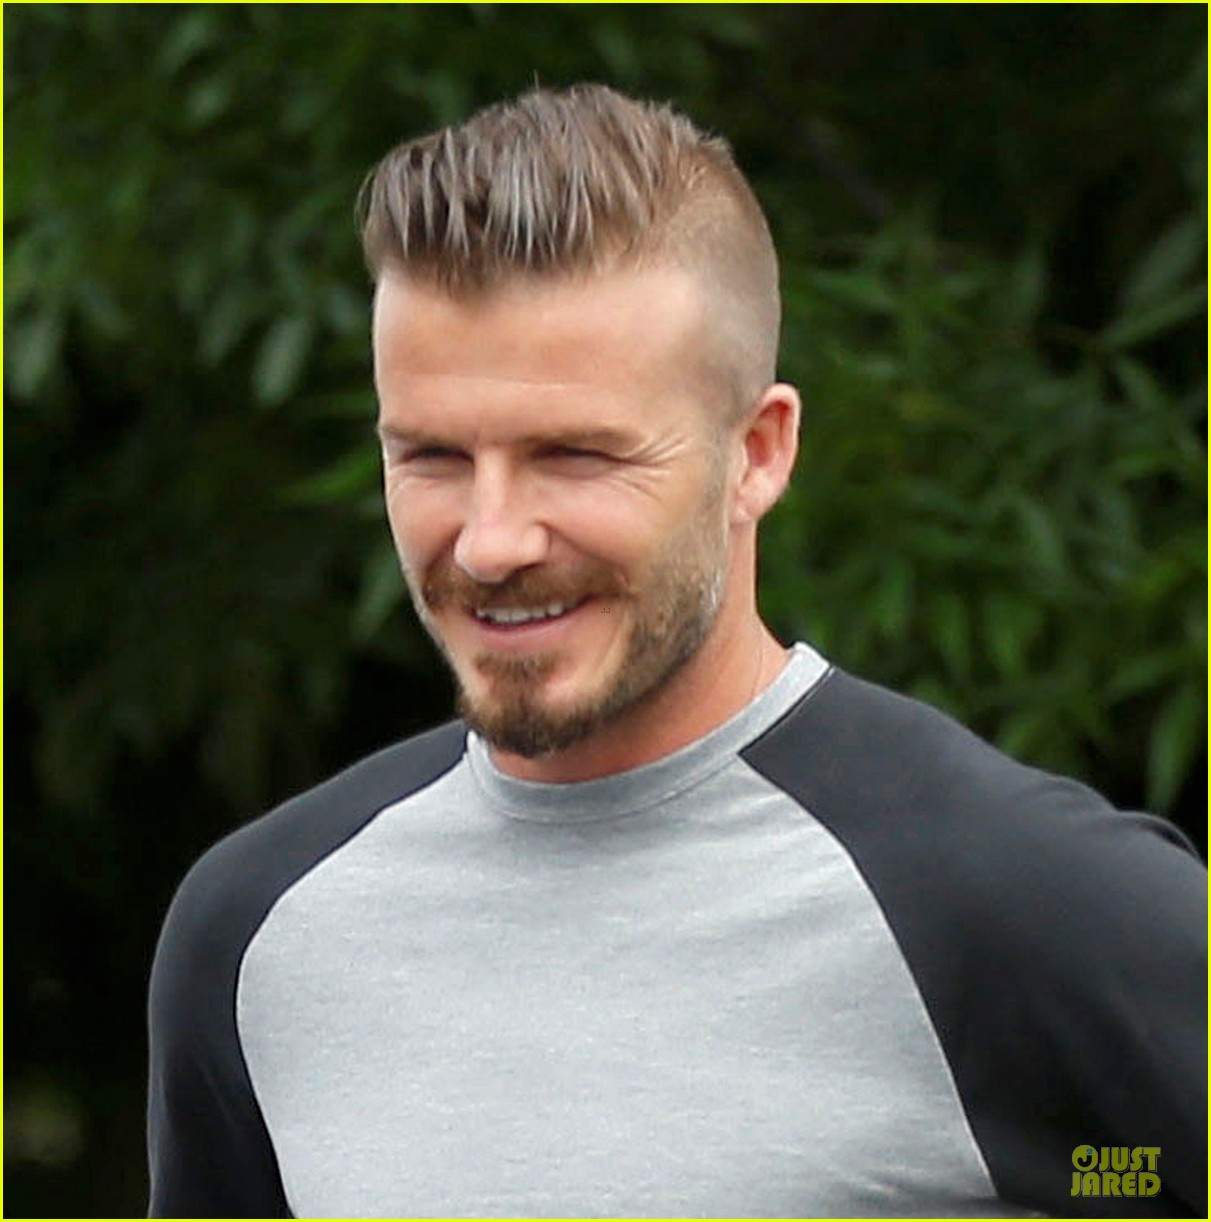 david beckham hairstyles 2013 photos david beckham. Black Bedroom Furniture Sets. Home Design Ideas